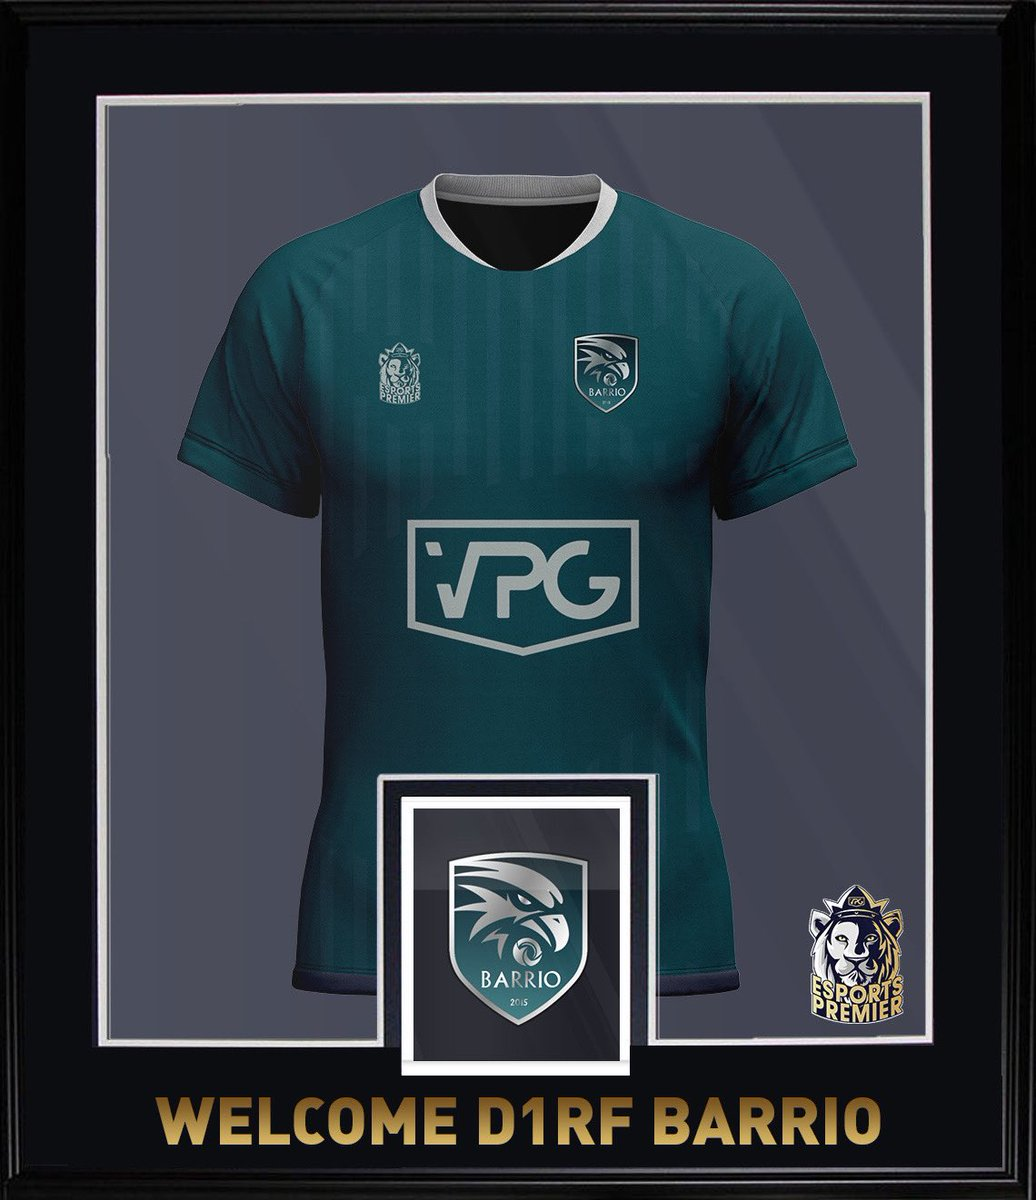 🤩 Welcome @BarrioFCP into the @VPGPremier !   🌍 Nationality: 🇮🇹   🏆 Under Hellas last season, but now the legendary Barrio are back! 🦅  Ready to challenge for the title!   #Barrio #FIFA21 #ProClubs #VPG https://t.co/4MqwFp41Du